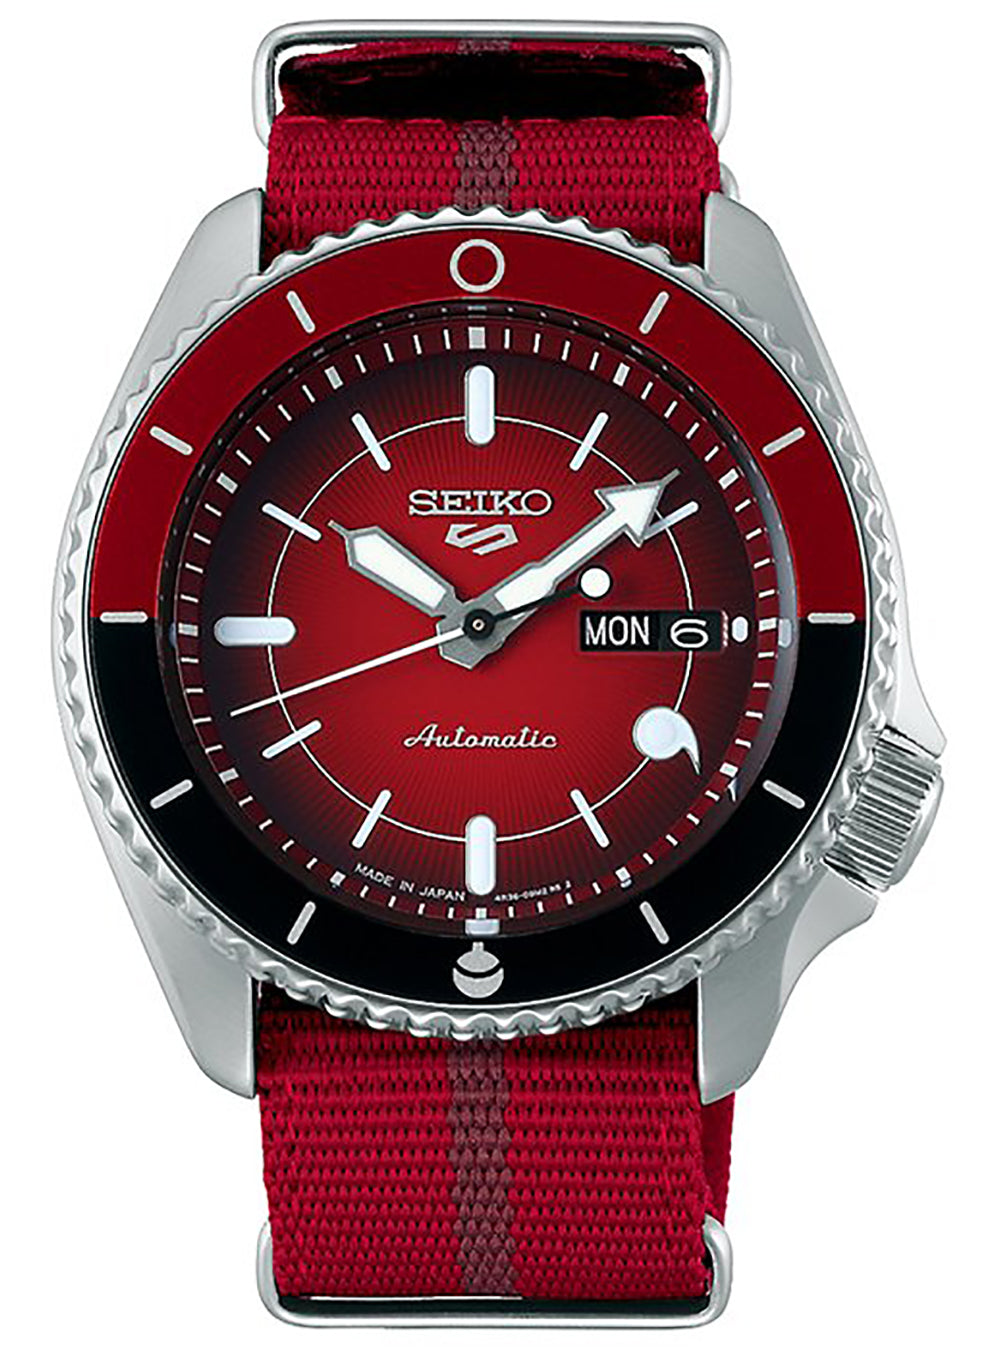 SEIKO 5 SPORTS NARUTO & BORUTO LIMITED EDITION SARADA UCHIHA MODEL SBSA089 MADE IN JAPAN JDM